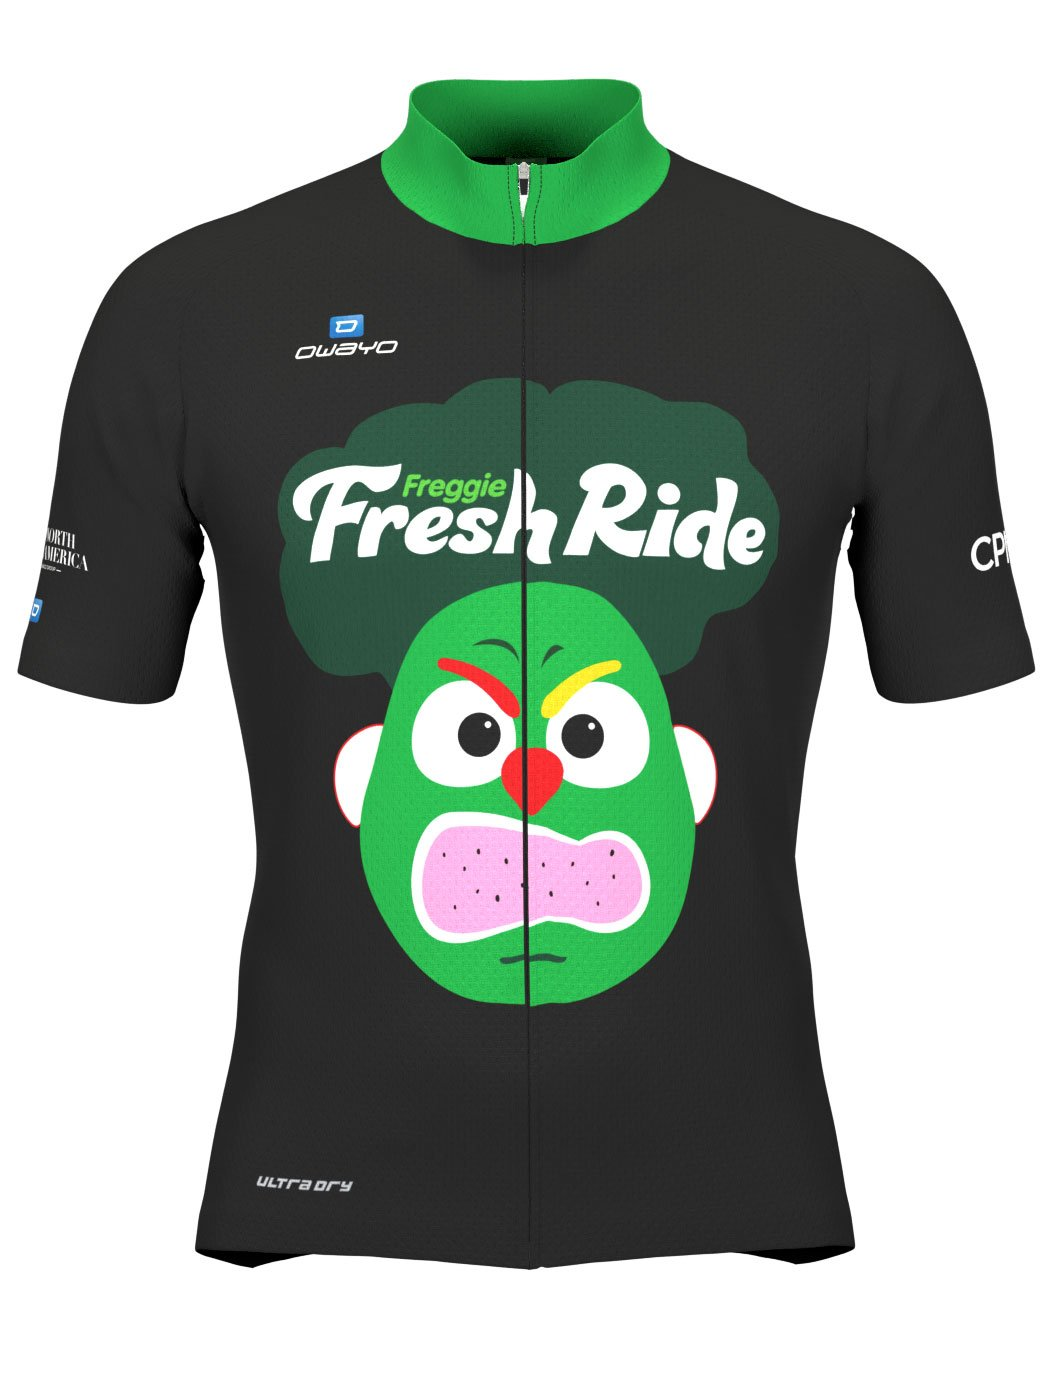 FREGGIE FRESH RIDE 5 JERSEY DESIGN